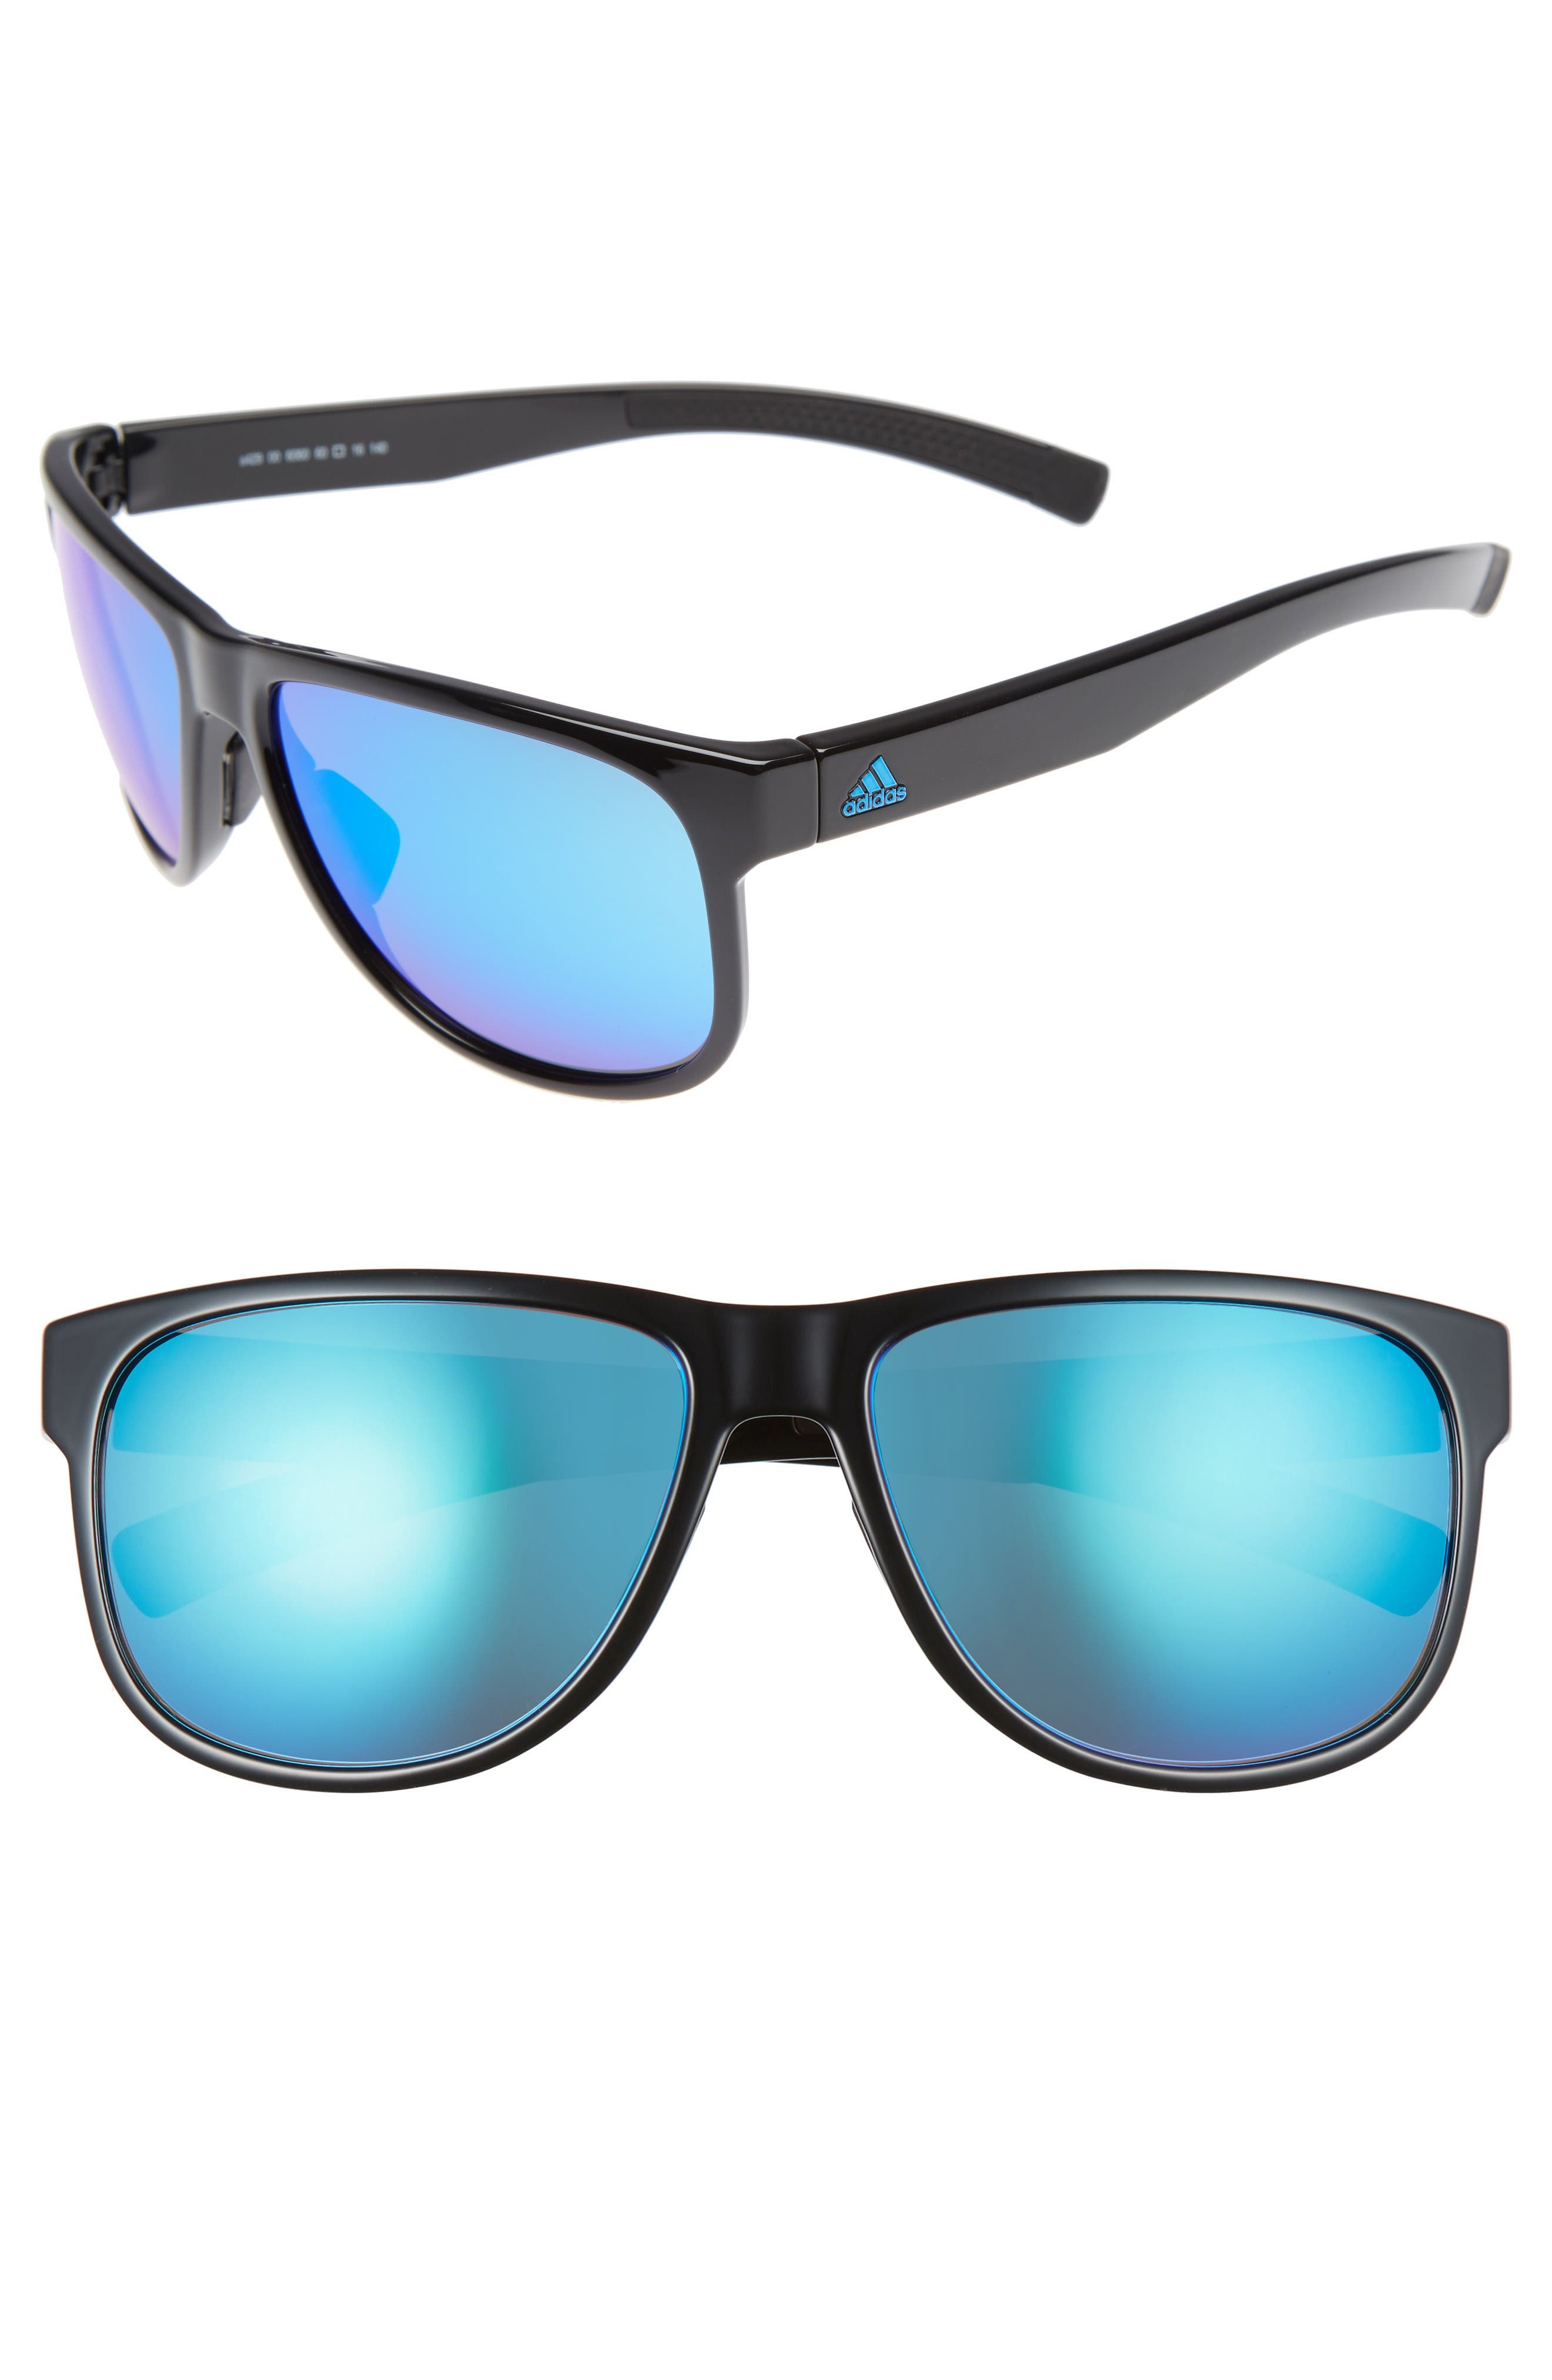 Sprung 60mm Sunglasses,                             Main thumbnail 1, color,                             Shiny Blue/ Blue Mirror